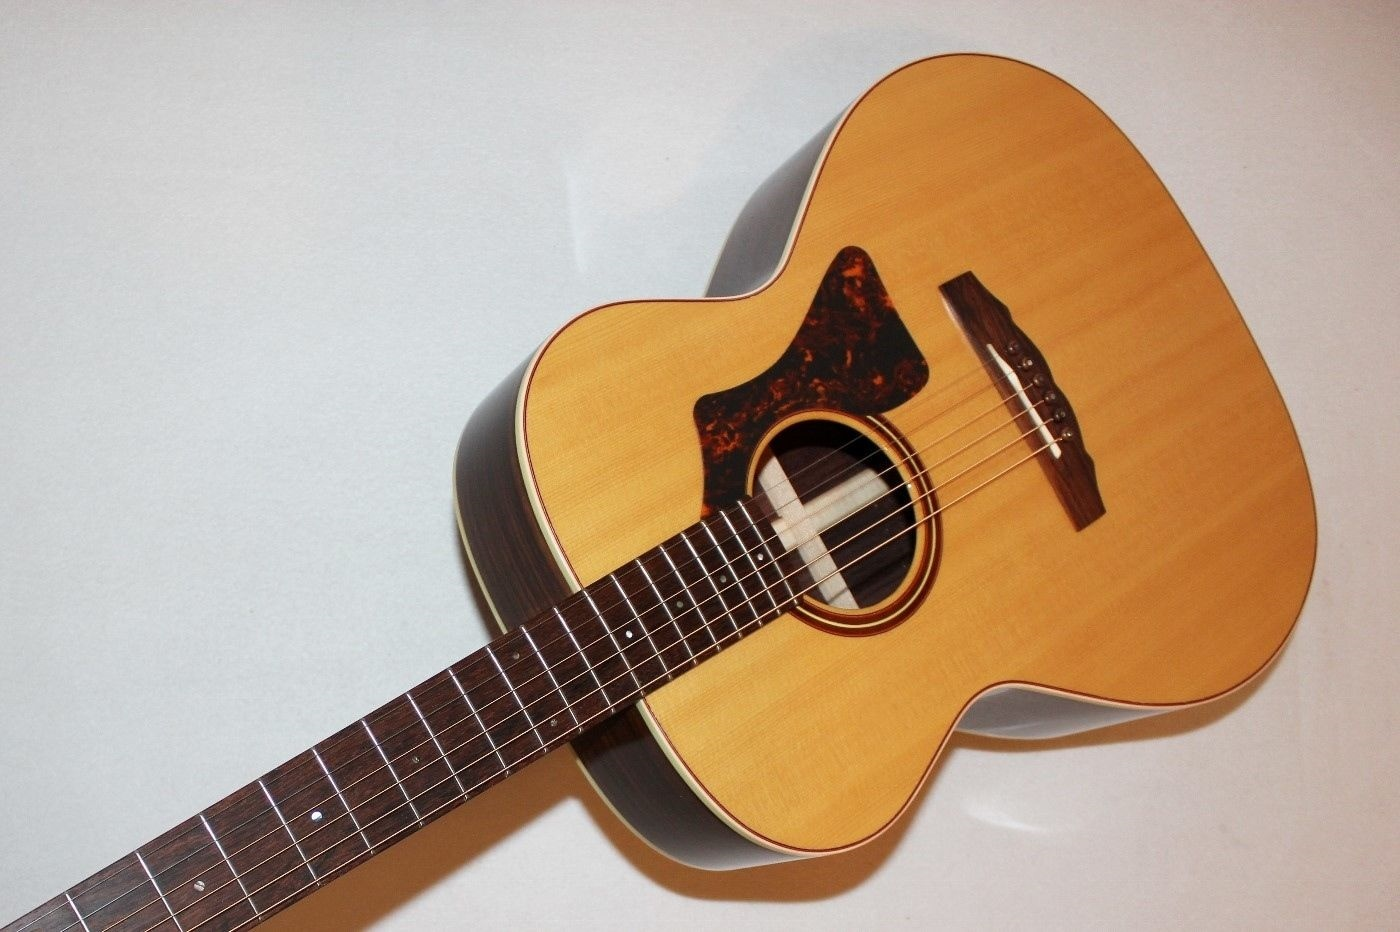 Guild Usa Cv 1 F 40 All Solid Wood Acoustic Guitar W